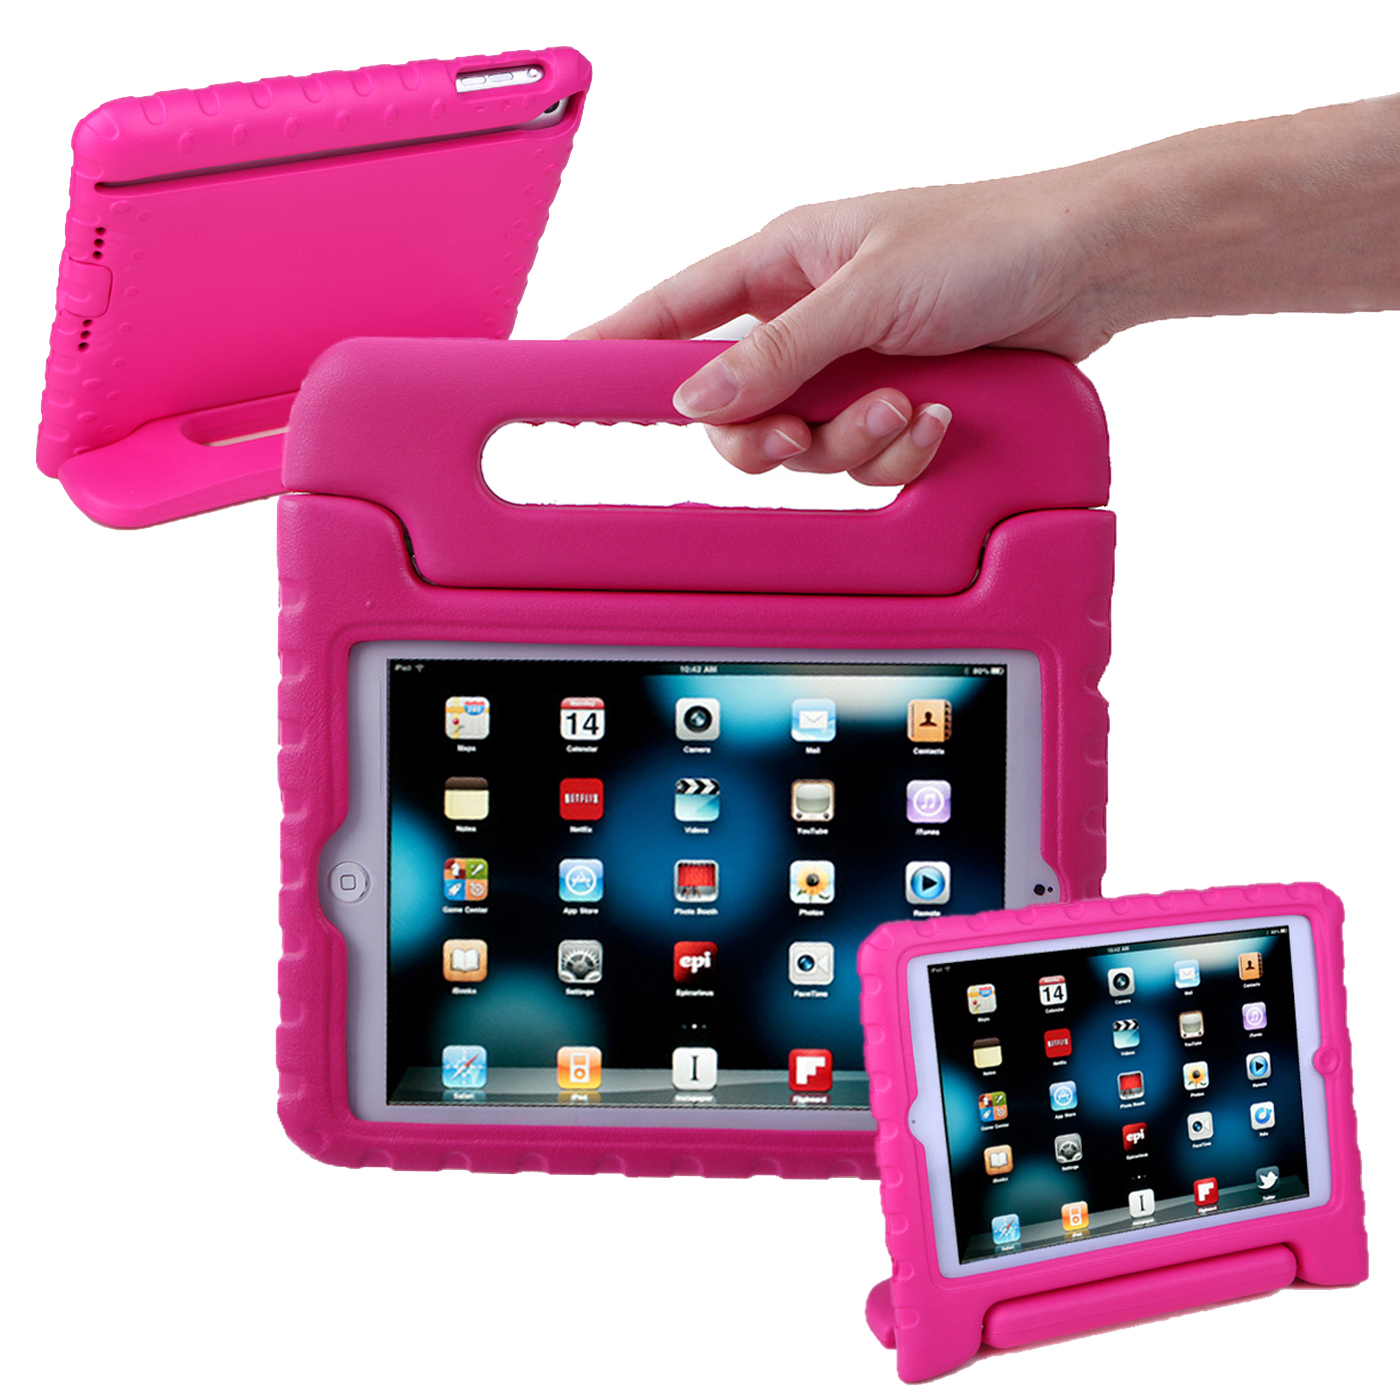 HDE iPad Mini Kids Case Shockproof Handle Stand Cover for Apple iPad Mini 2/3 Retina (Hot Pink)